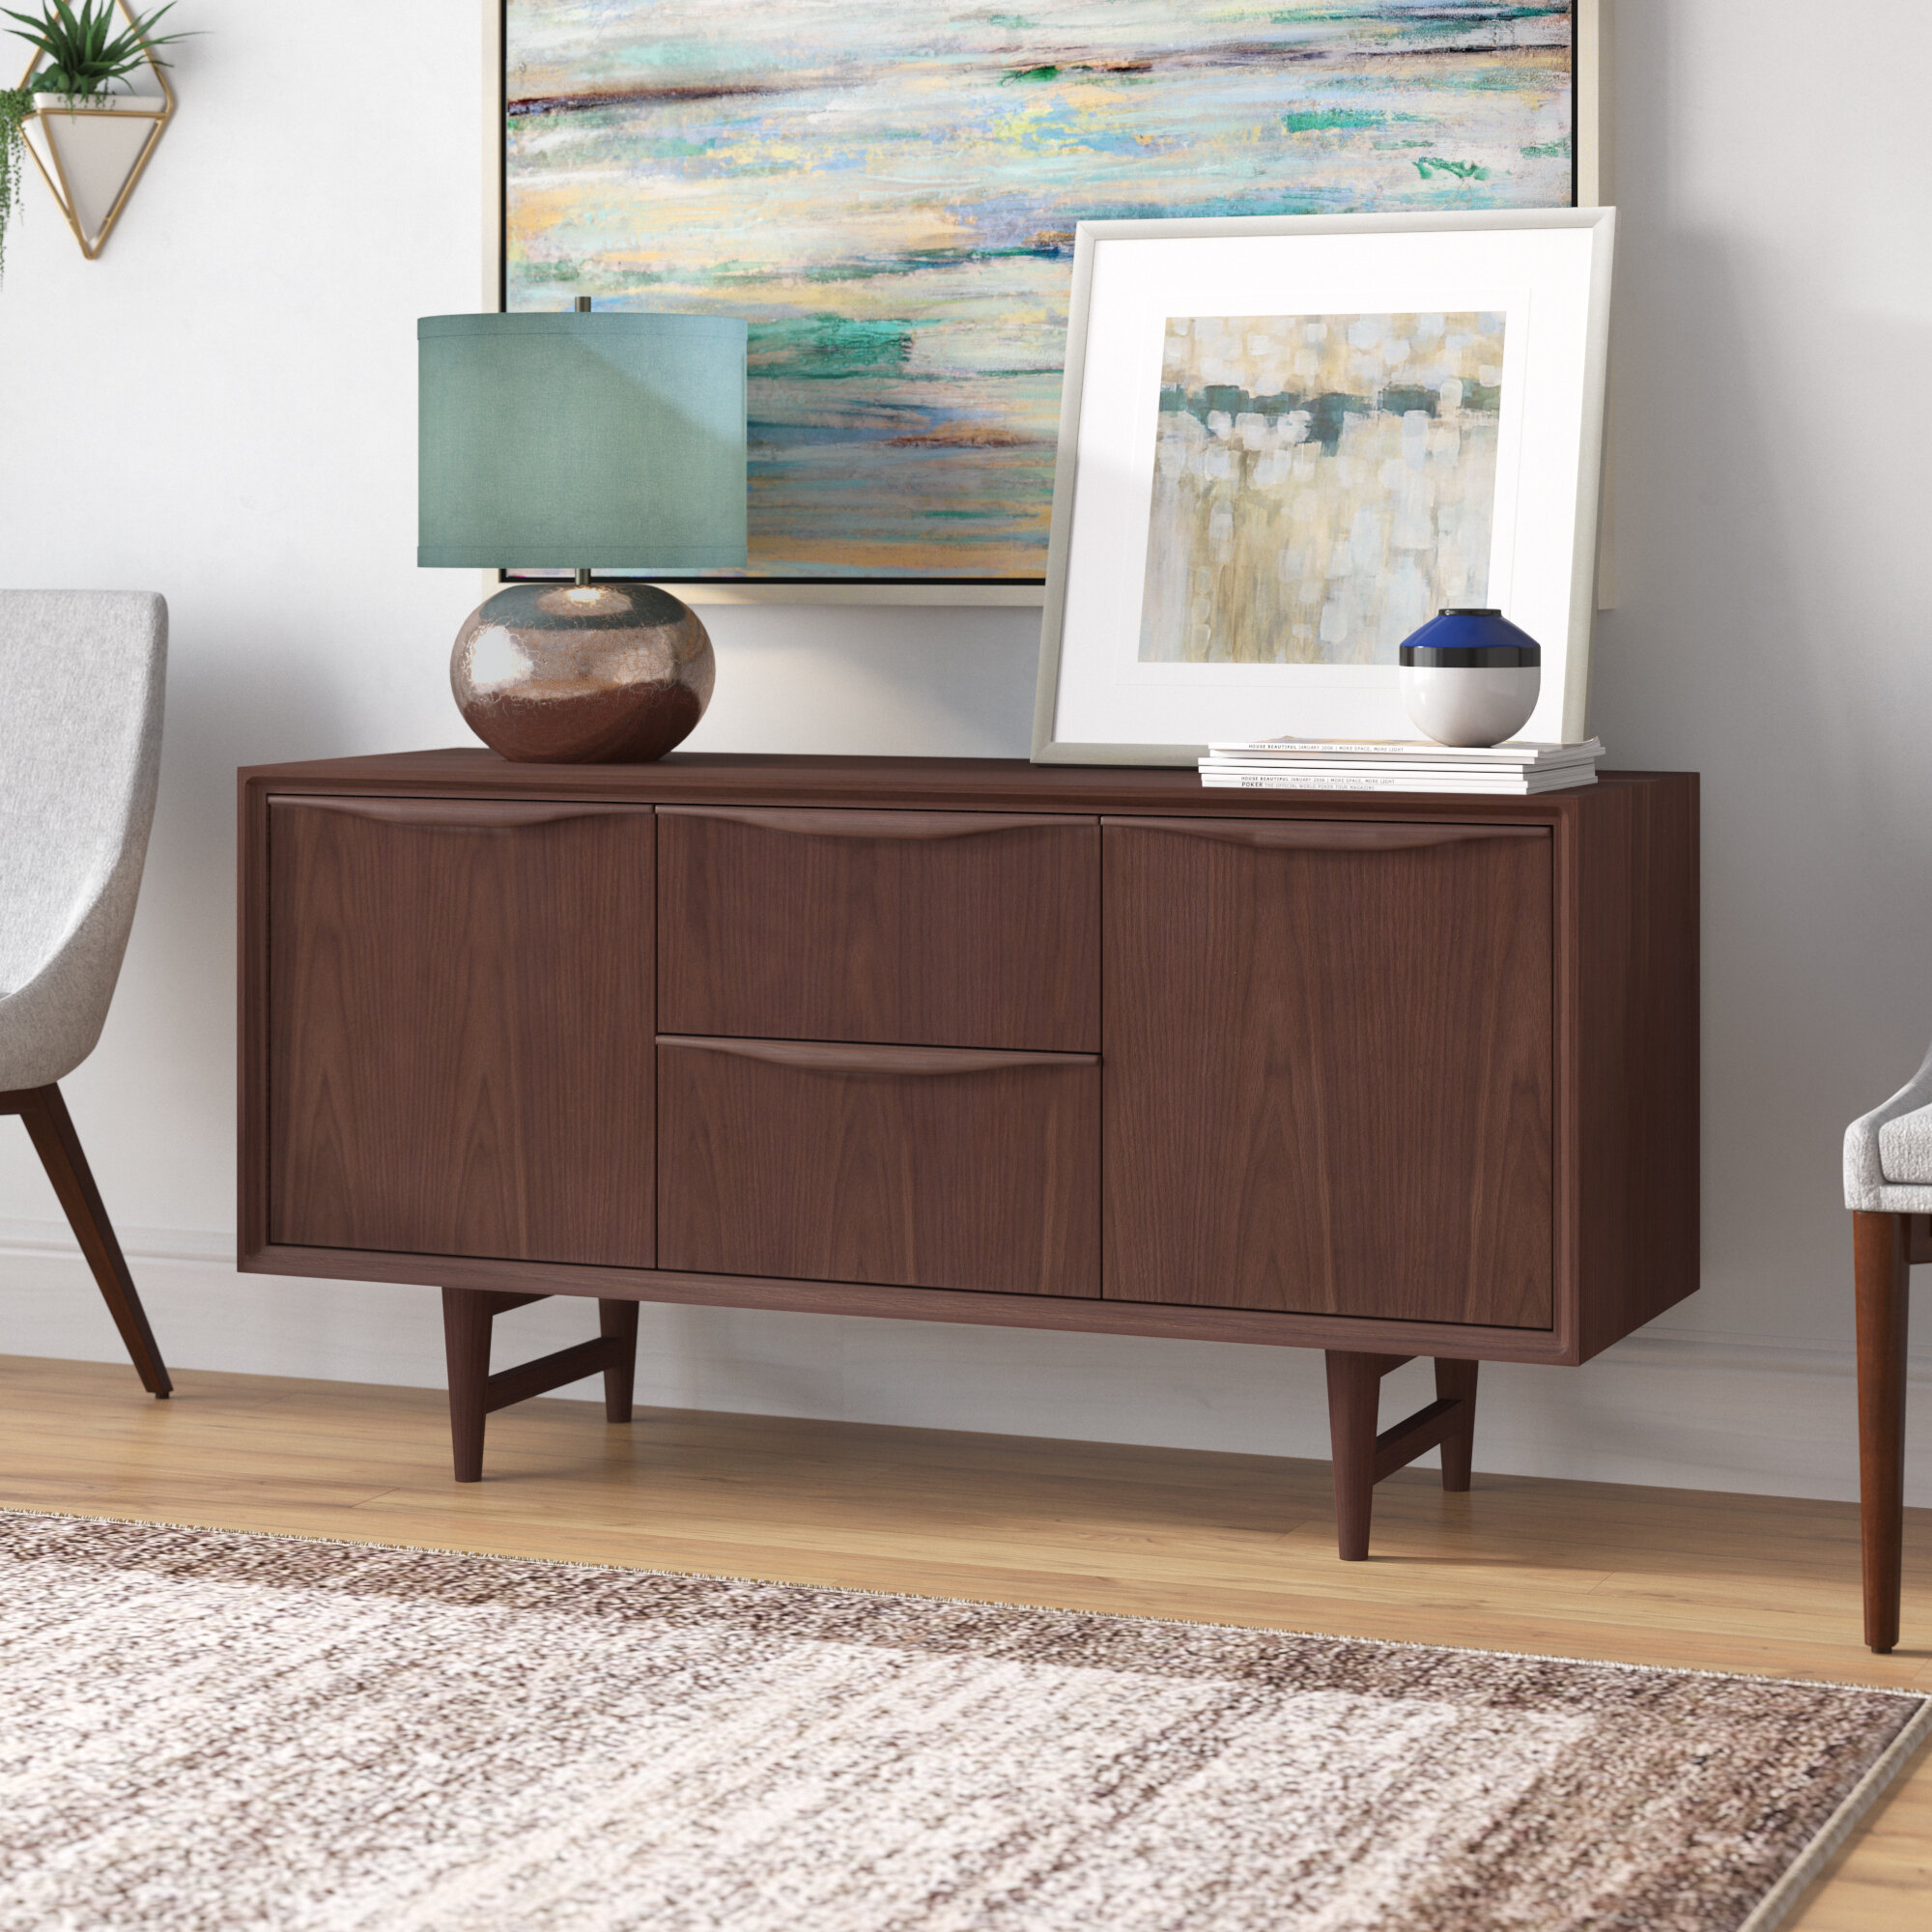 Divis Mid Century Buffet Table Throughout Mid Century Buffets (Gallery 22 of 30)